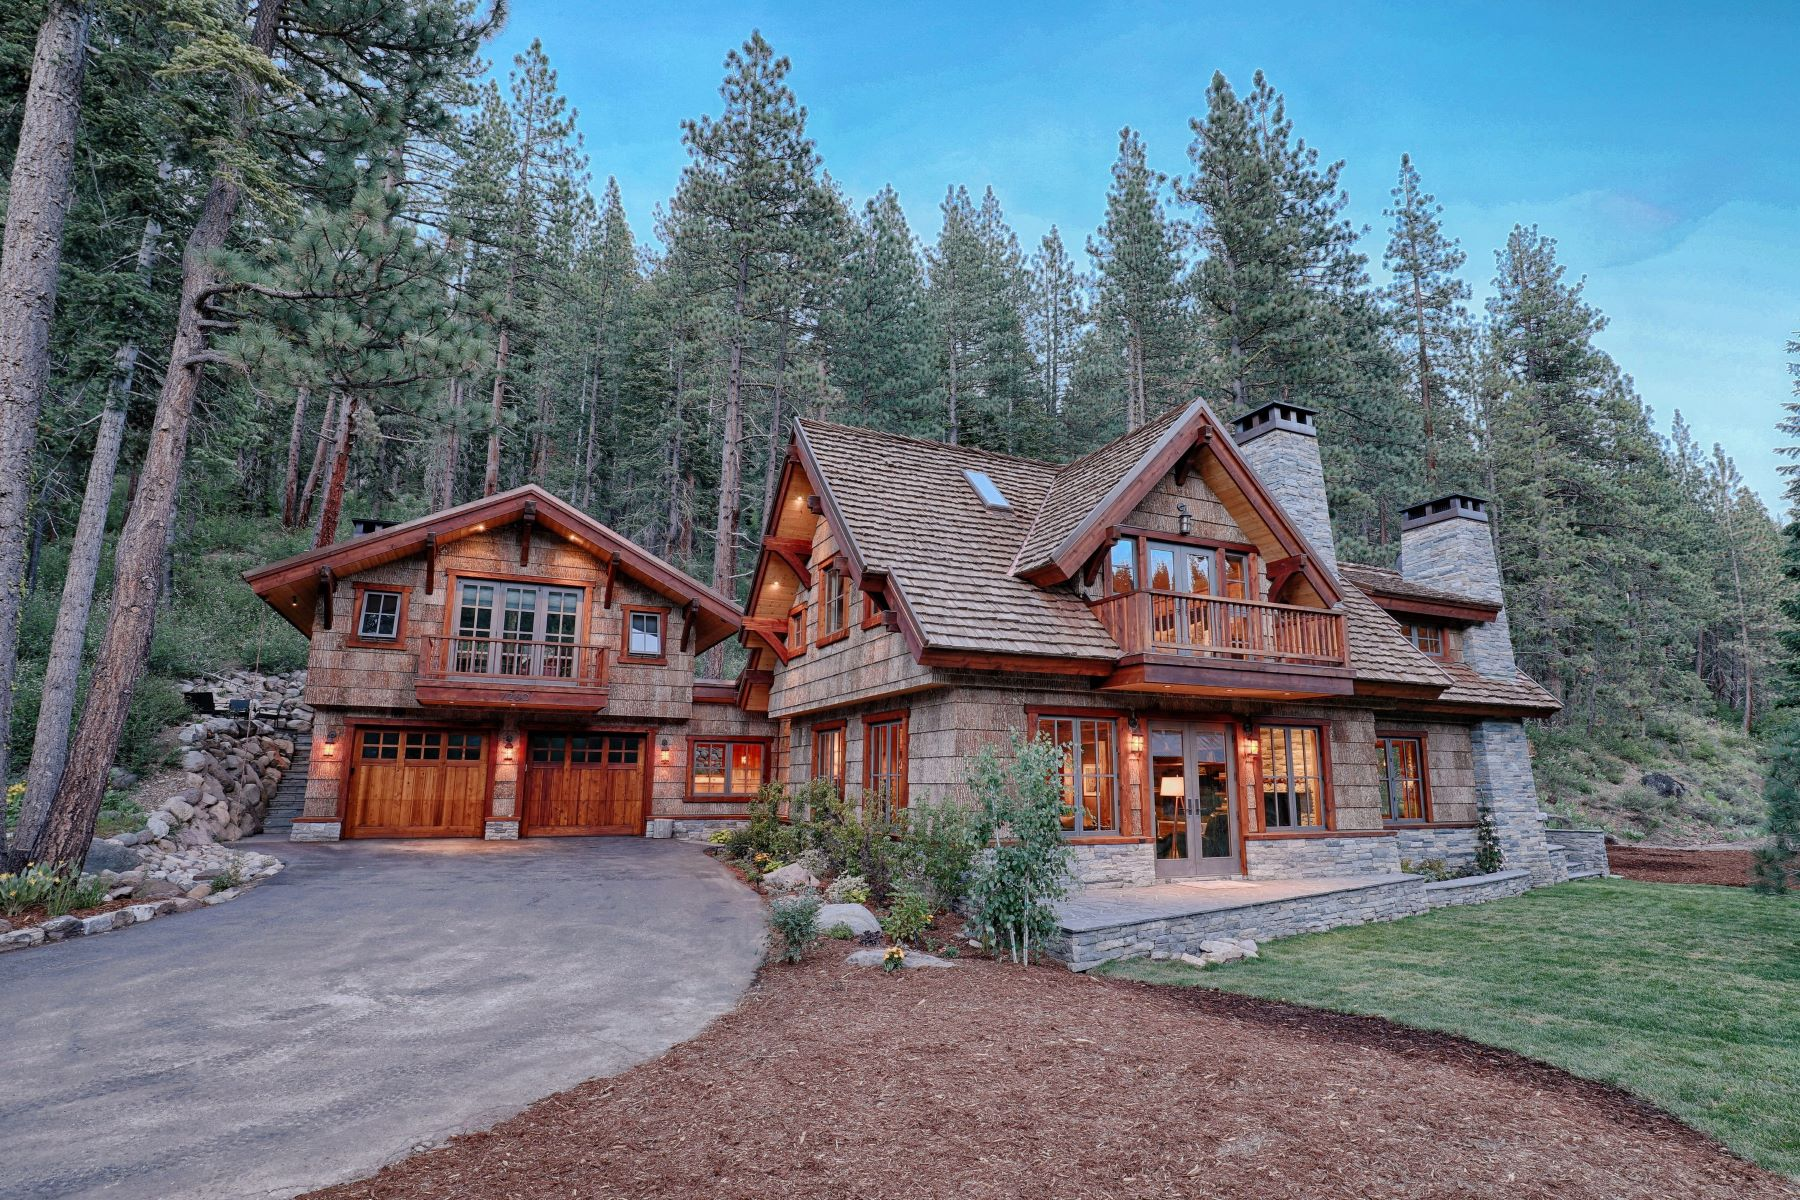 Single Family Home for Active at Custom Built Truckee River Estate 7260 River Road Olympic Valley, California 96145 United States